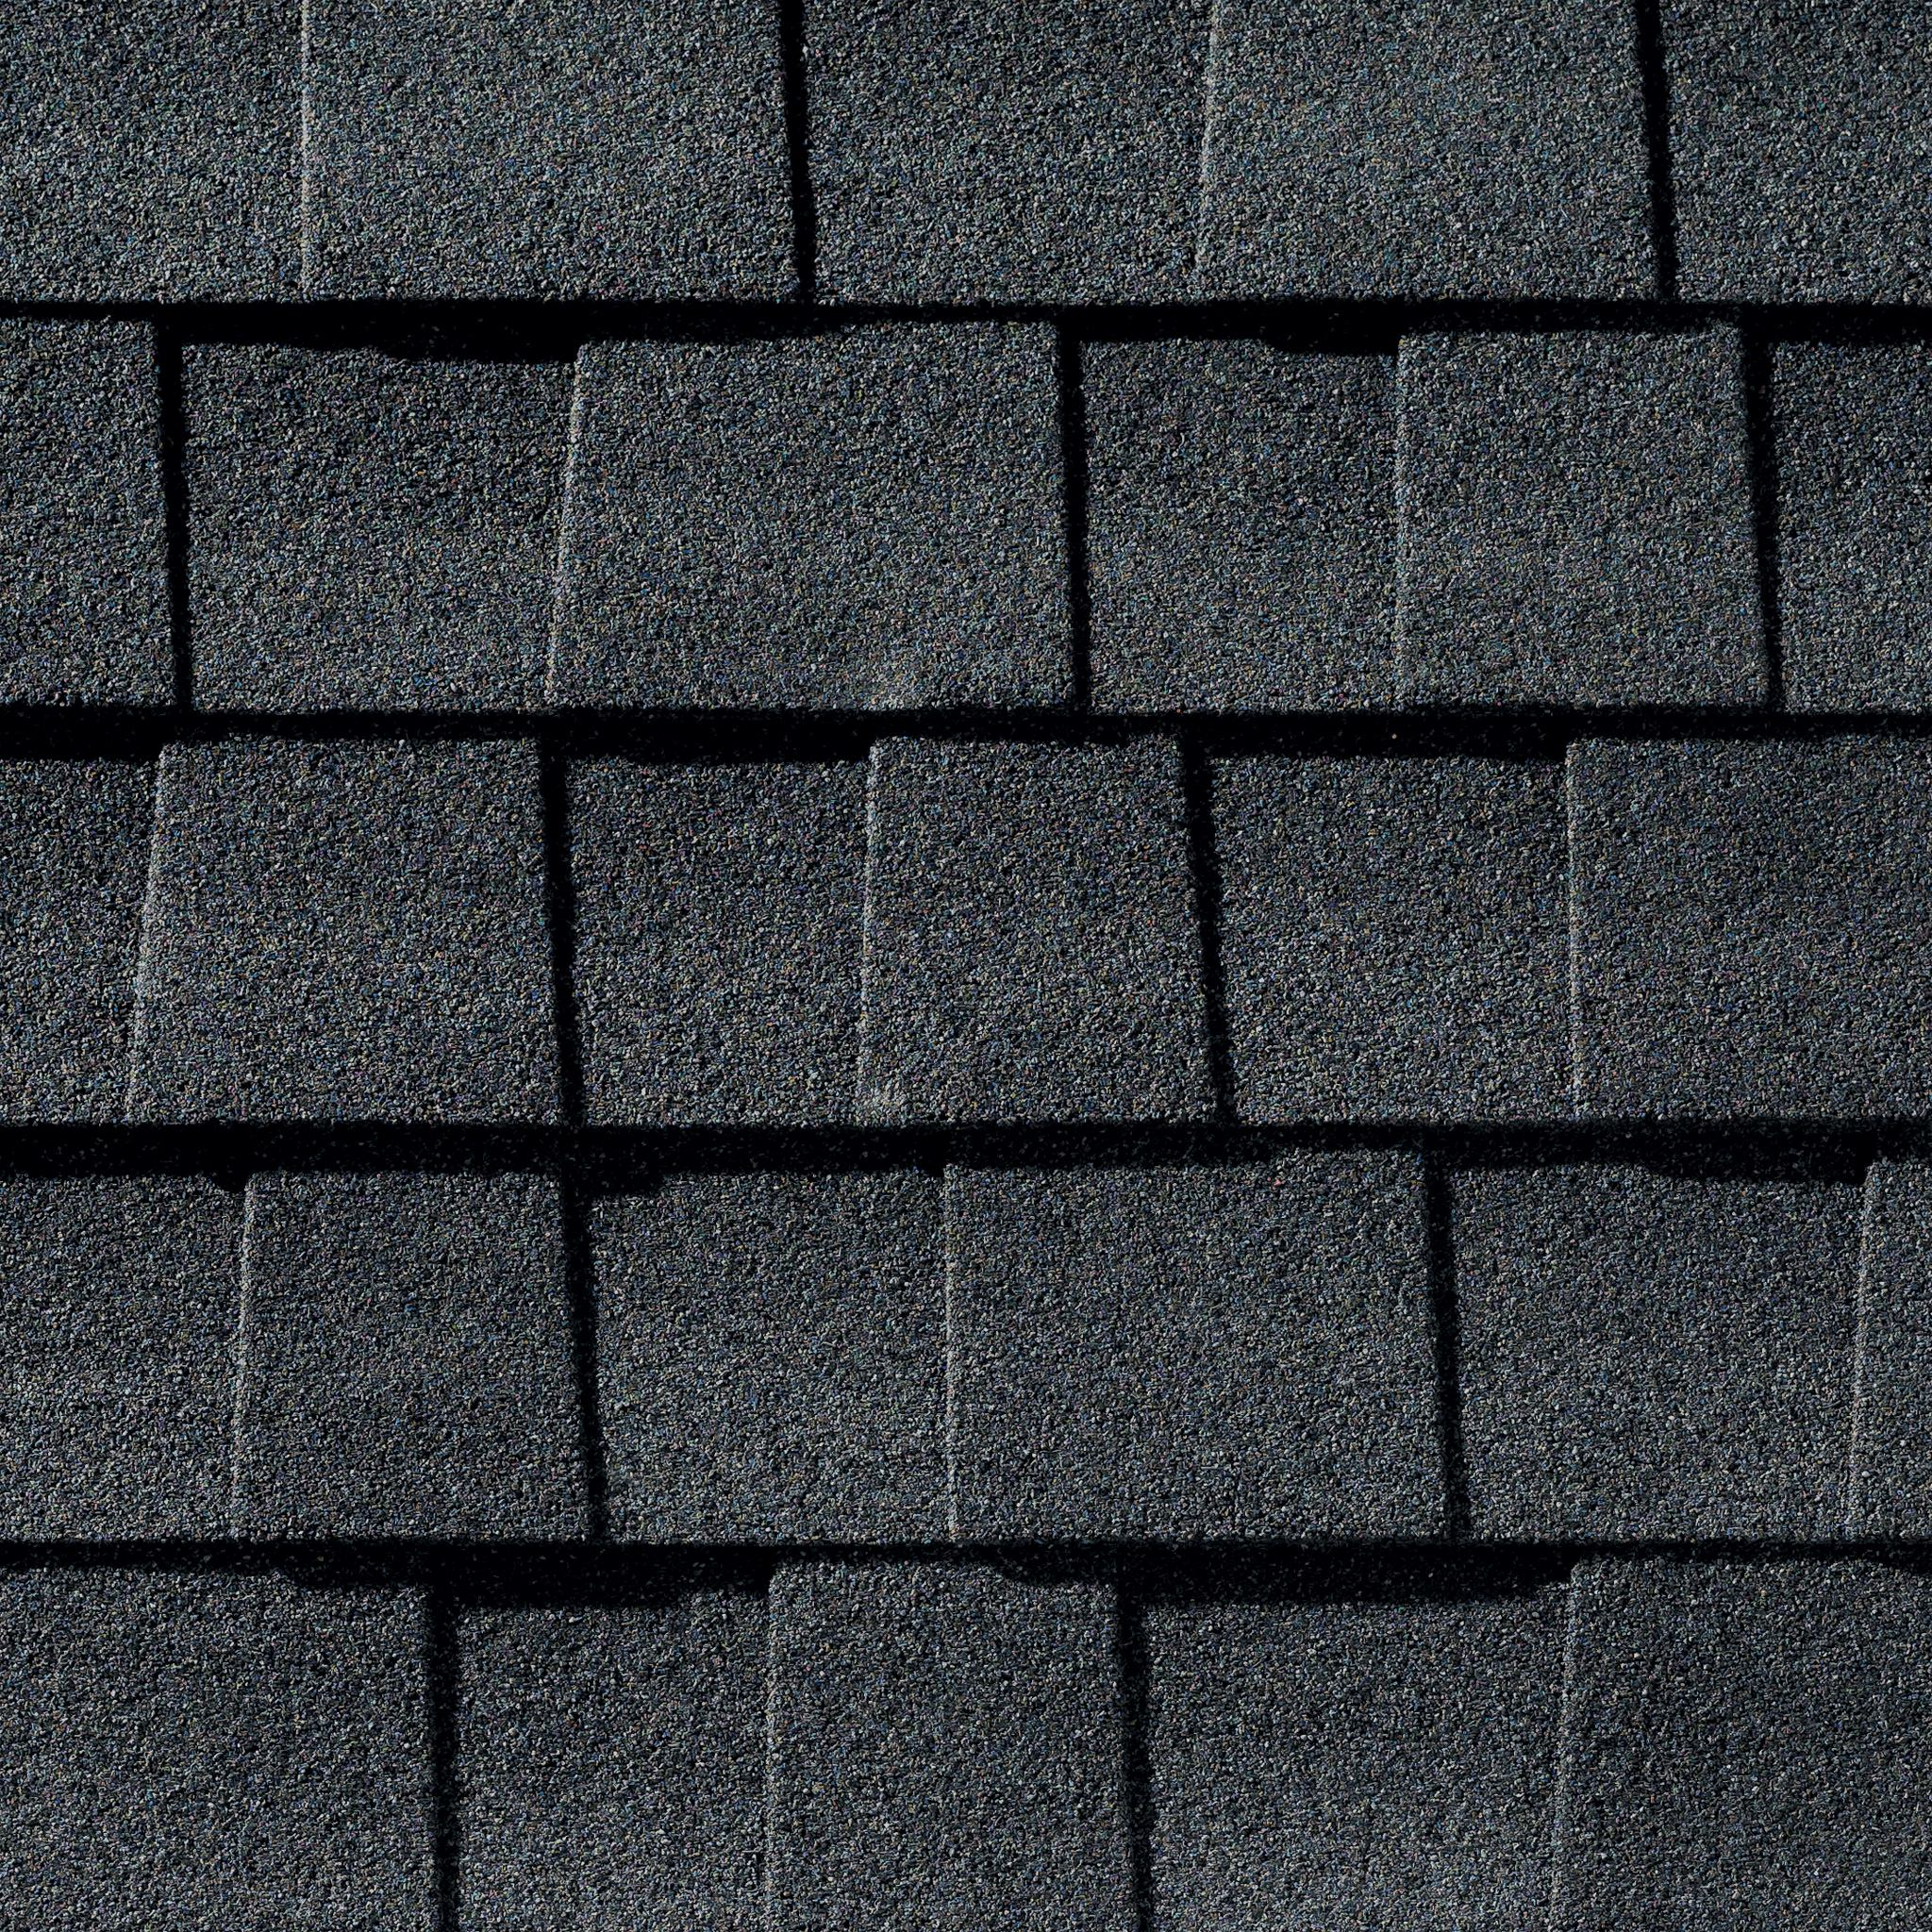 Close up photo of GAF's Timberline Natural Shadow Charcoal shingle swatch